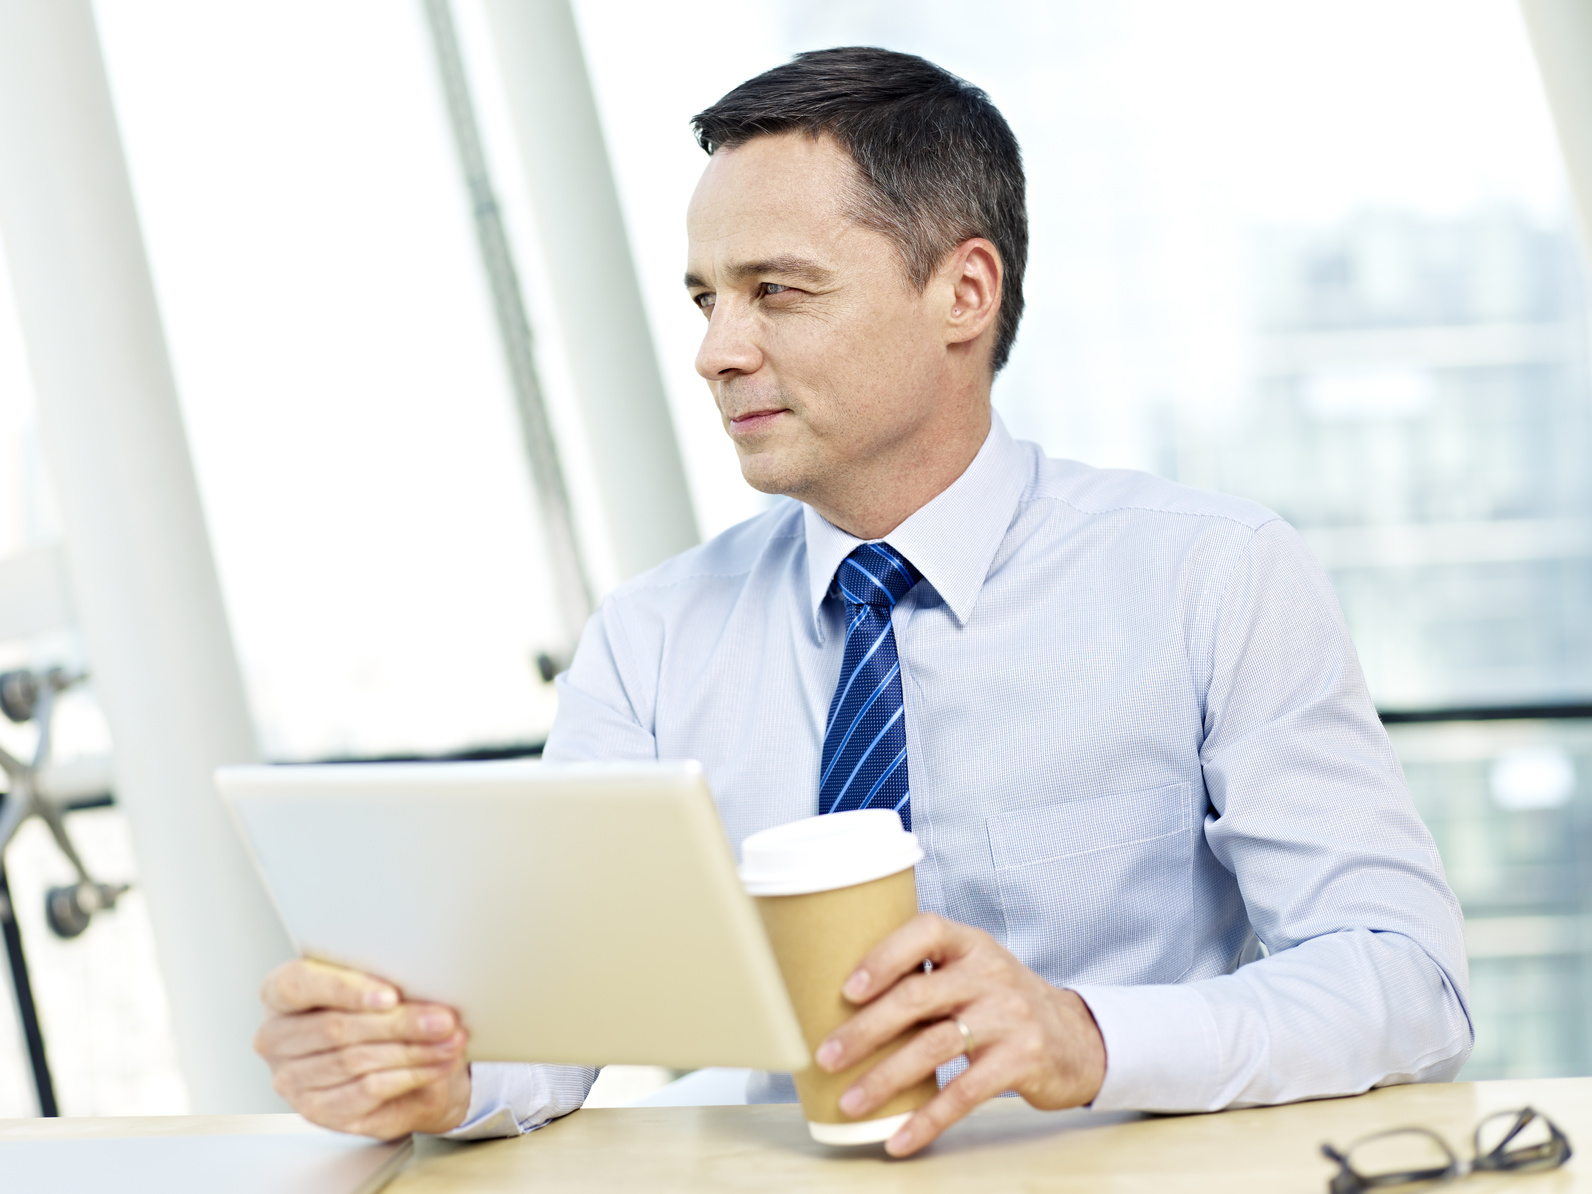 caucasian businessman holding tablet computer and coffee cup looking away thinking in office.